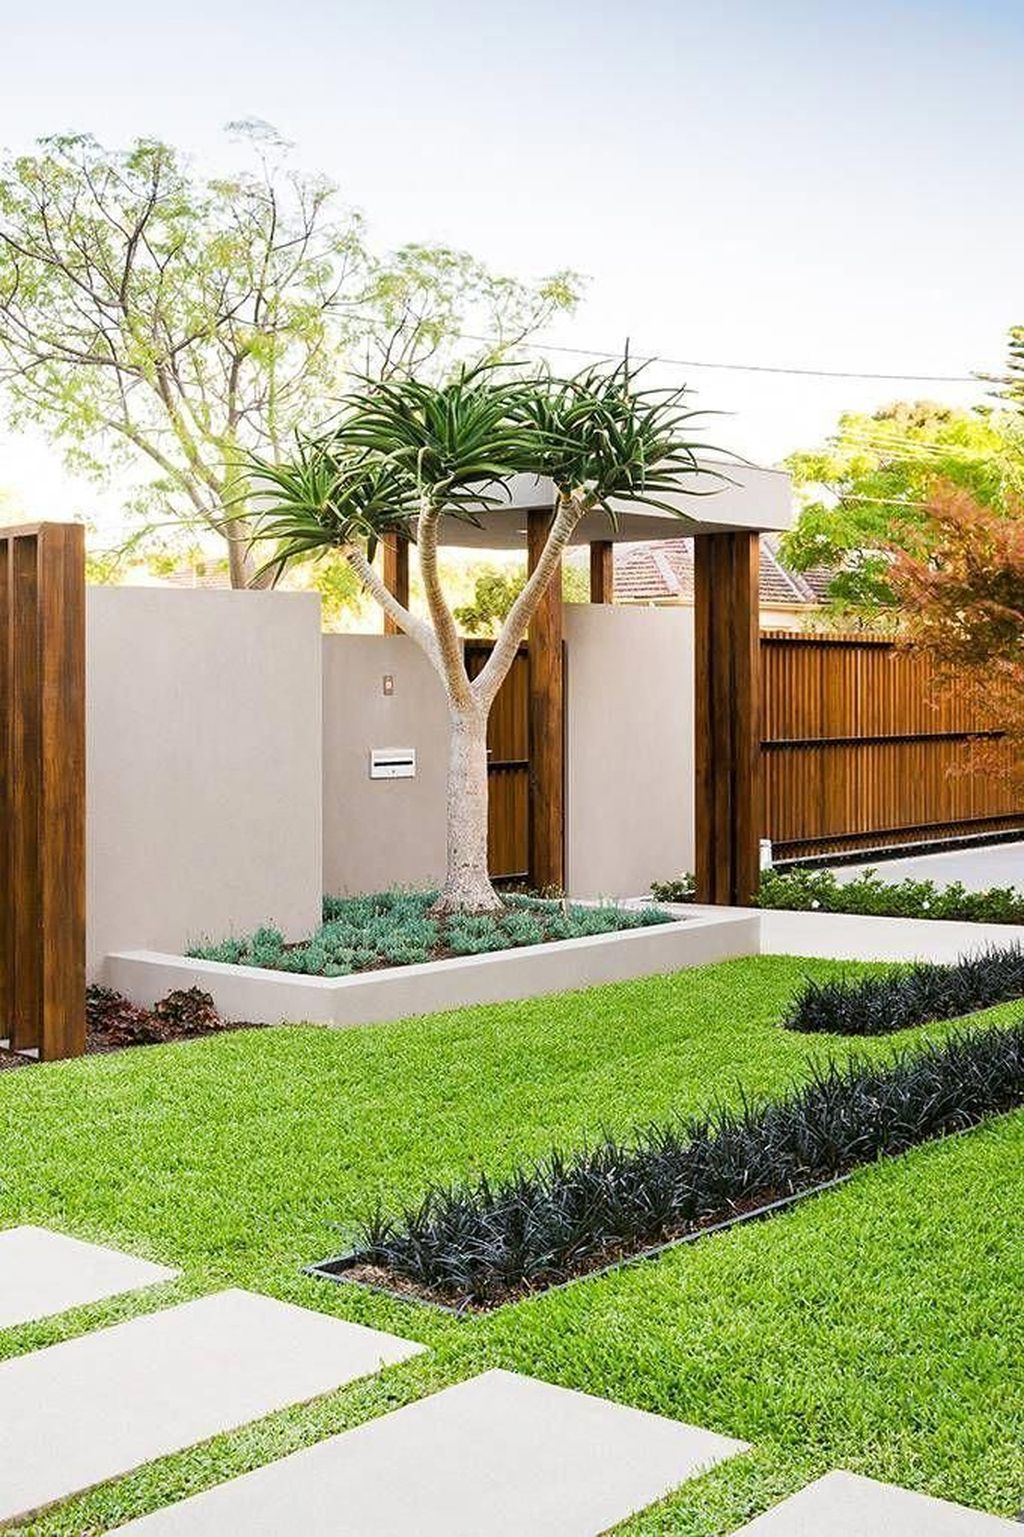 Inspiring Minimalist Frontyard Design Ideas To Try Asap 29